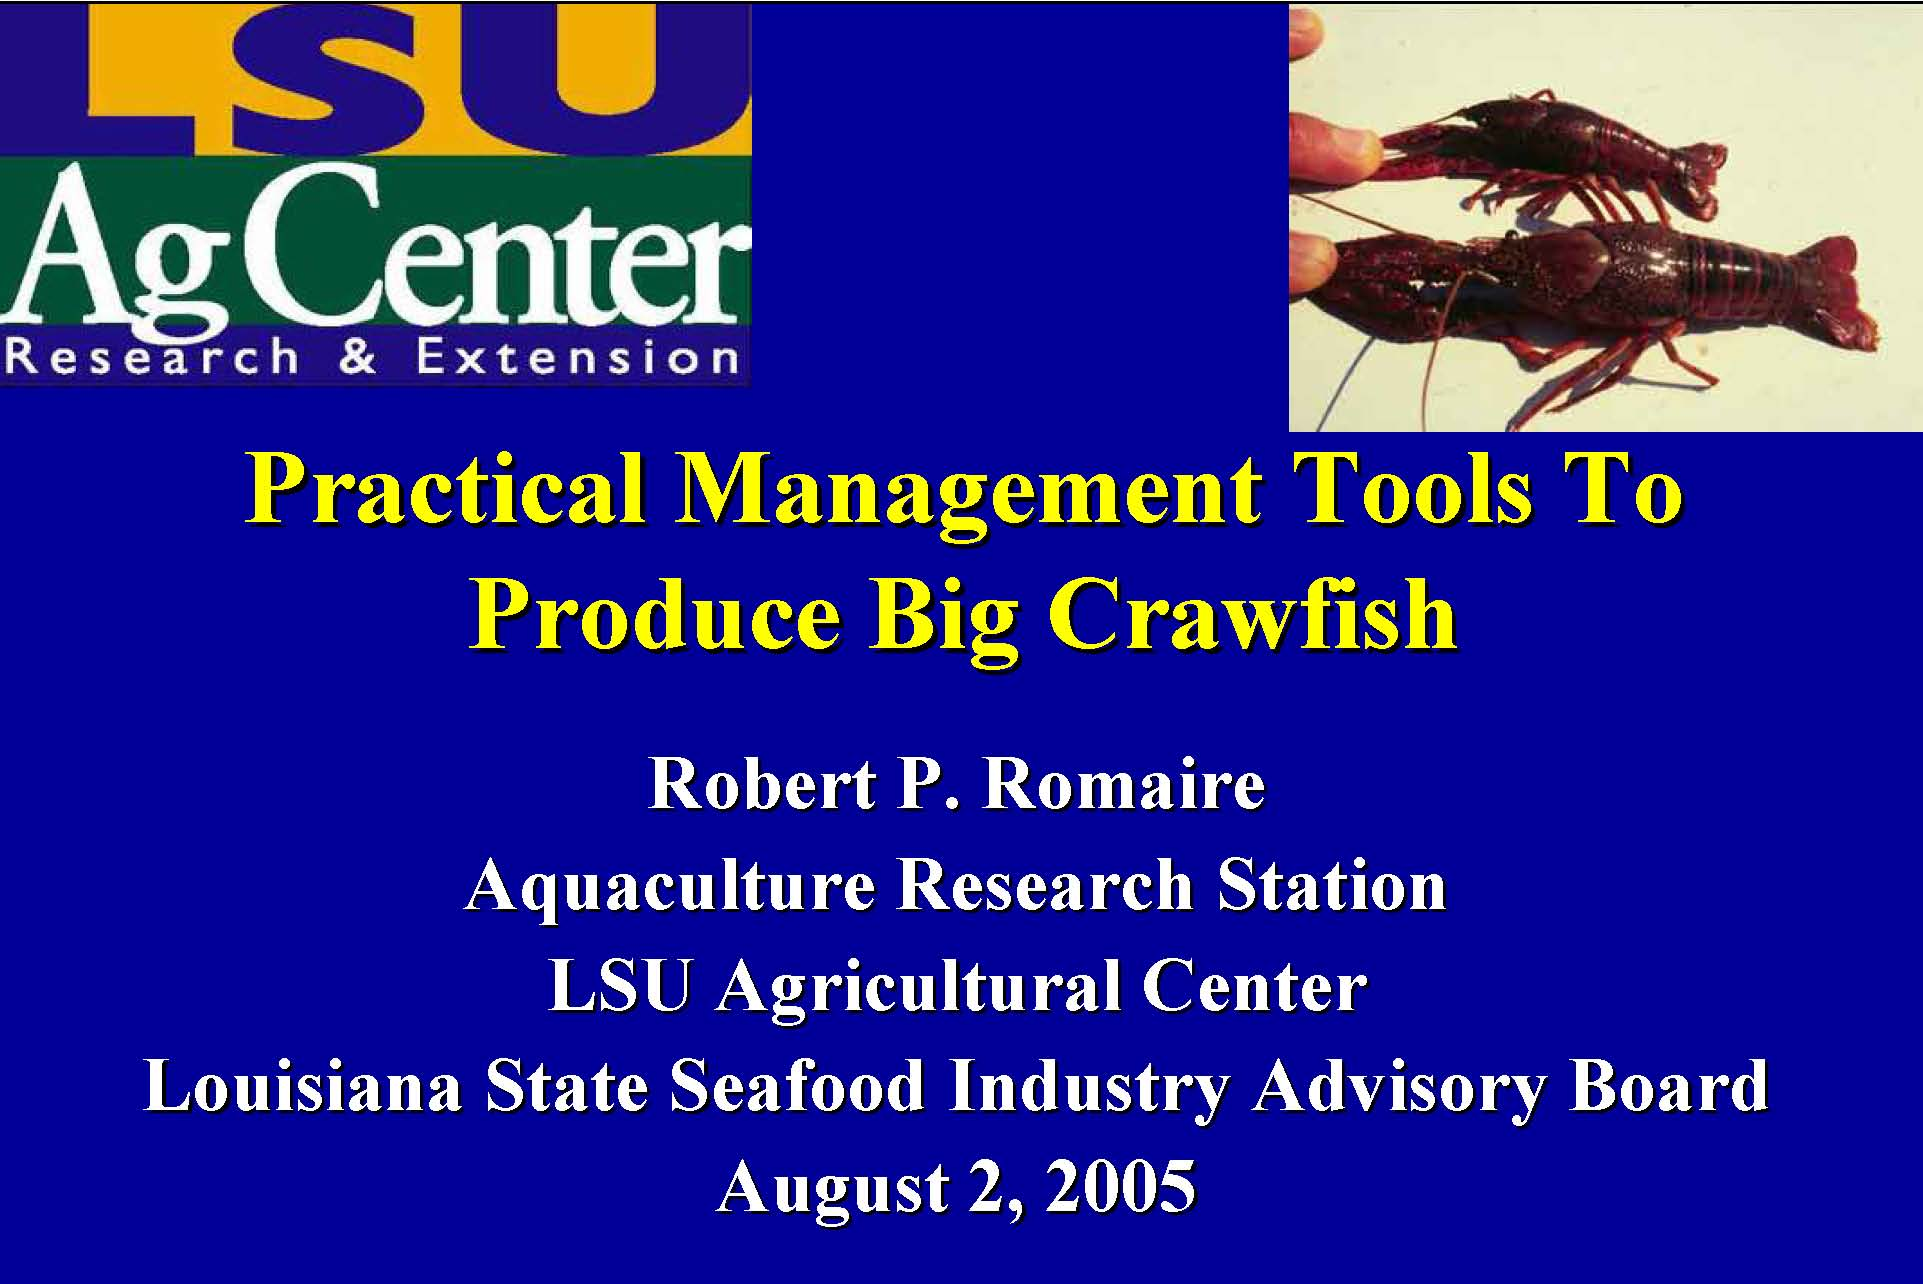 Practical Management Tools To Produce Big Crawfish